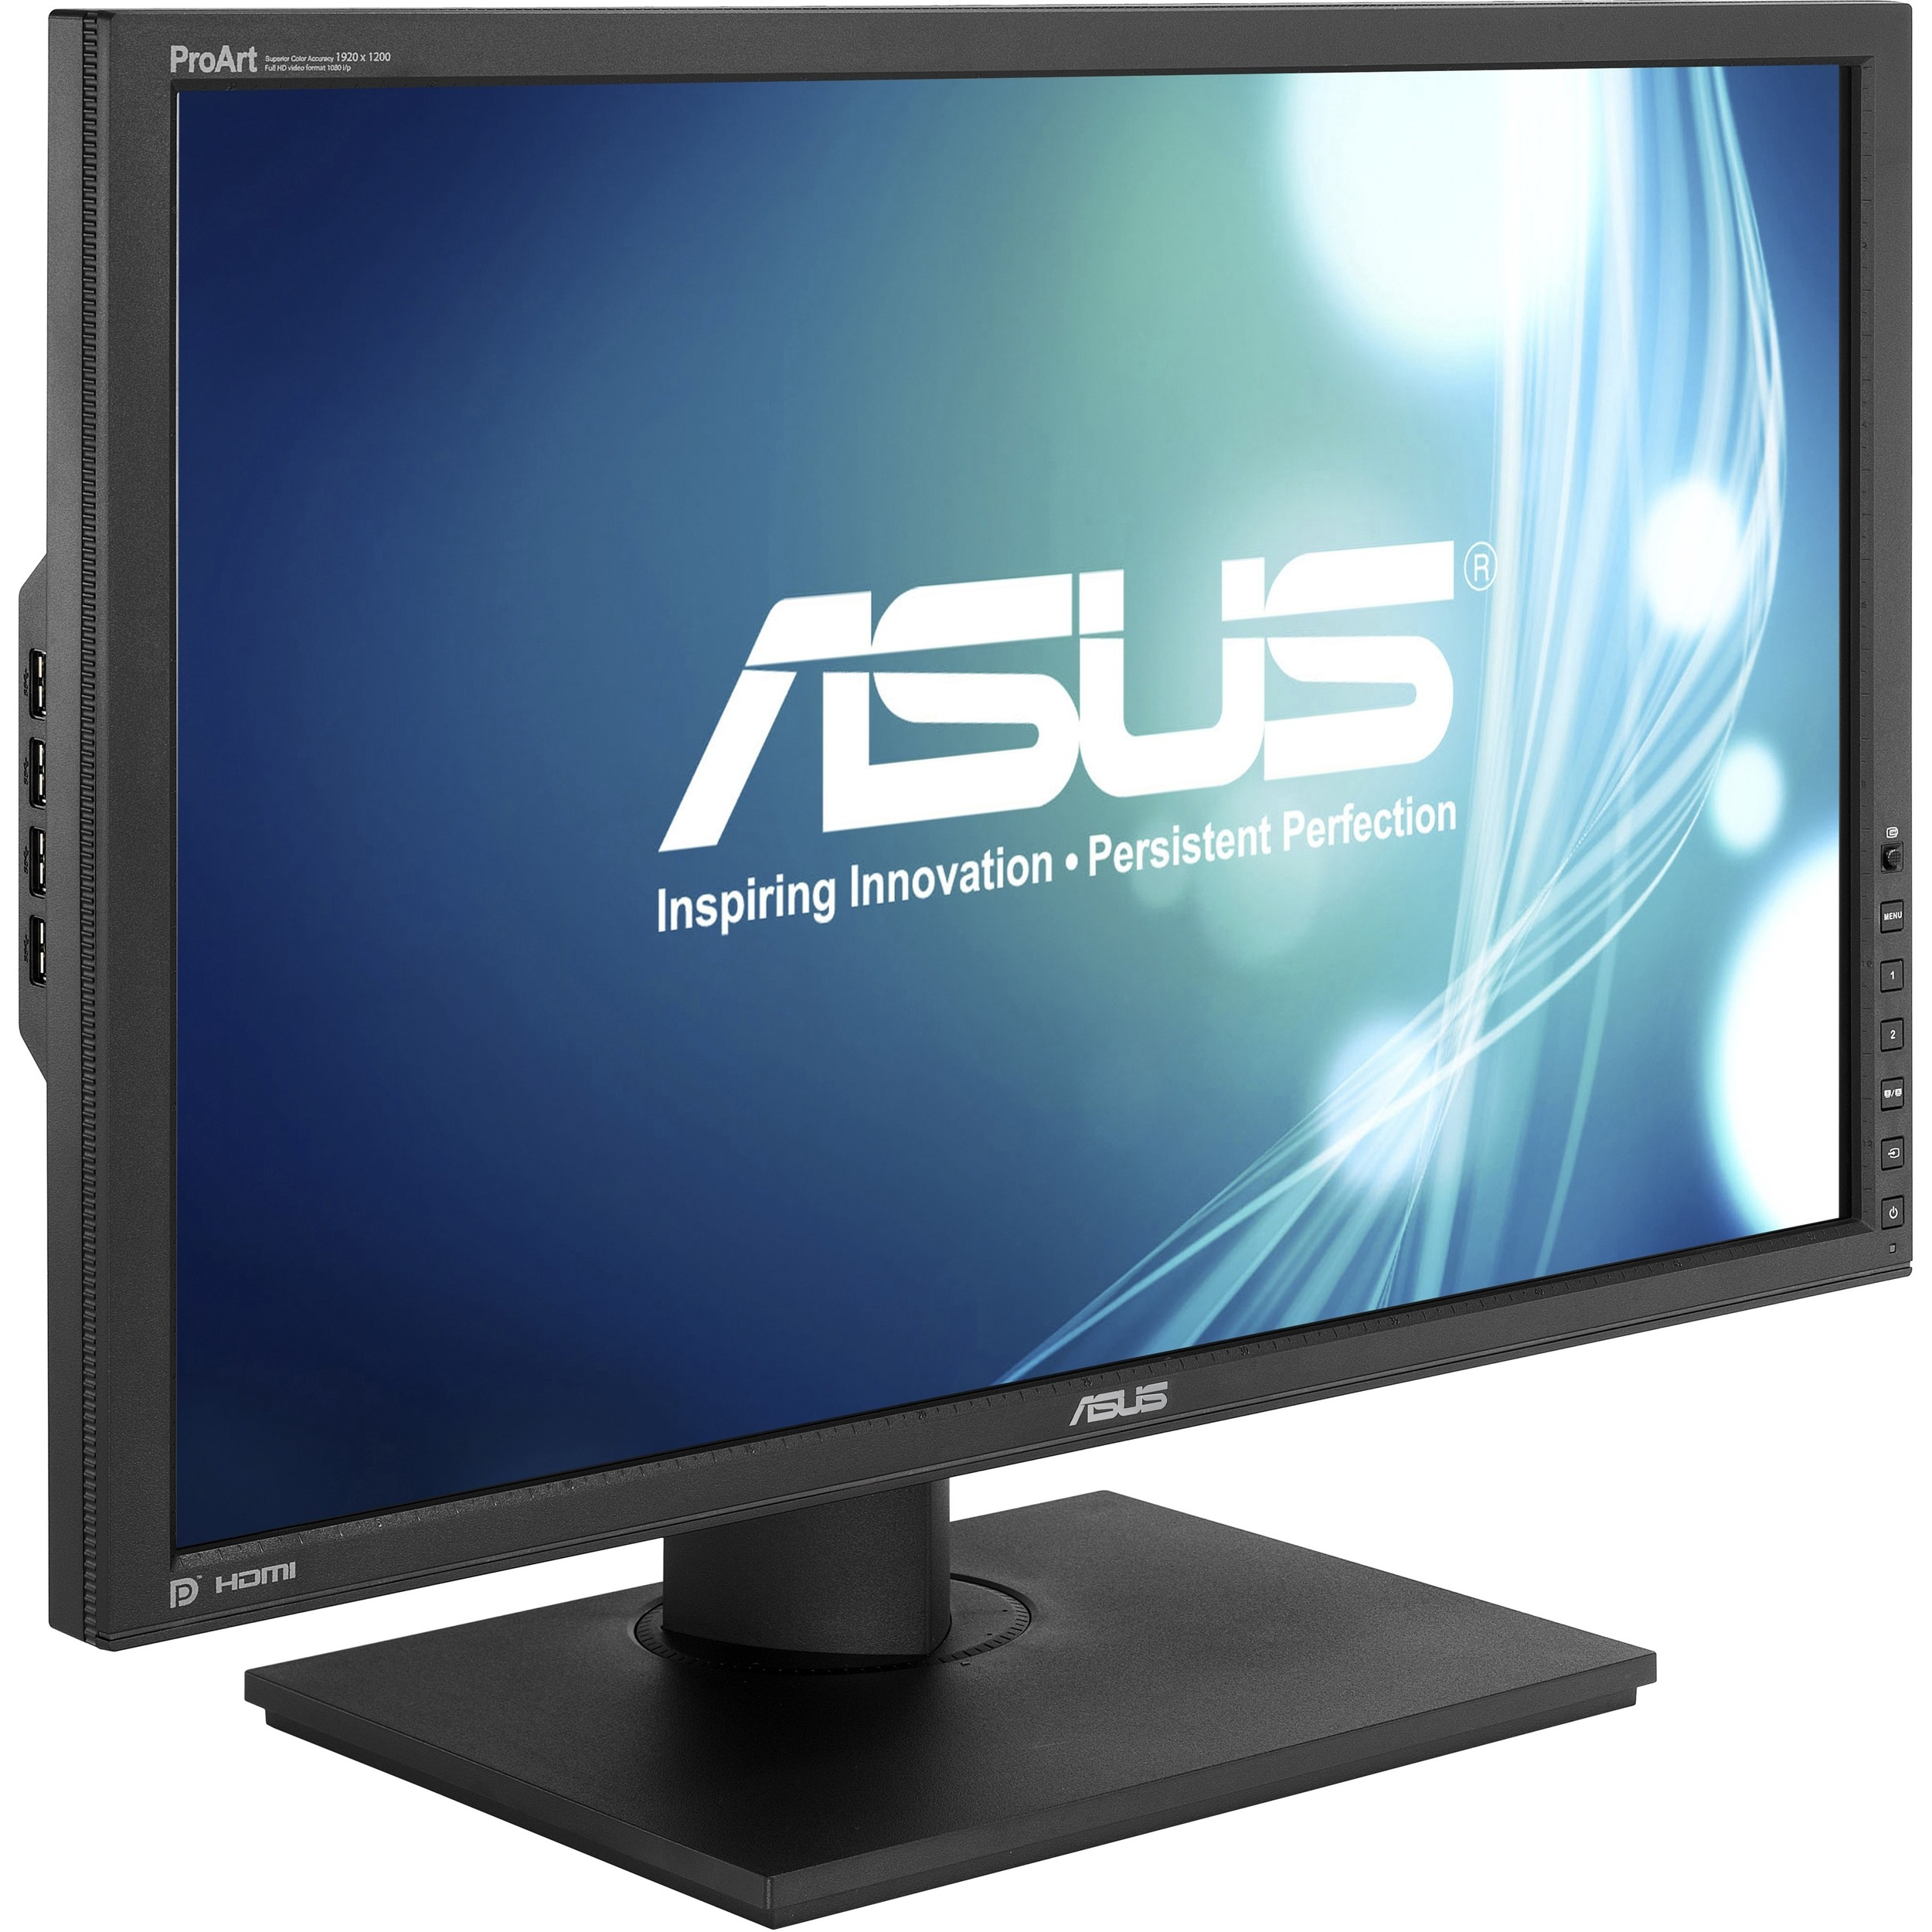 Asus PA248Q 61.2 cm 24.1inch LED LCD Monitor - 16:10 - 6 ms